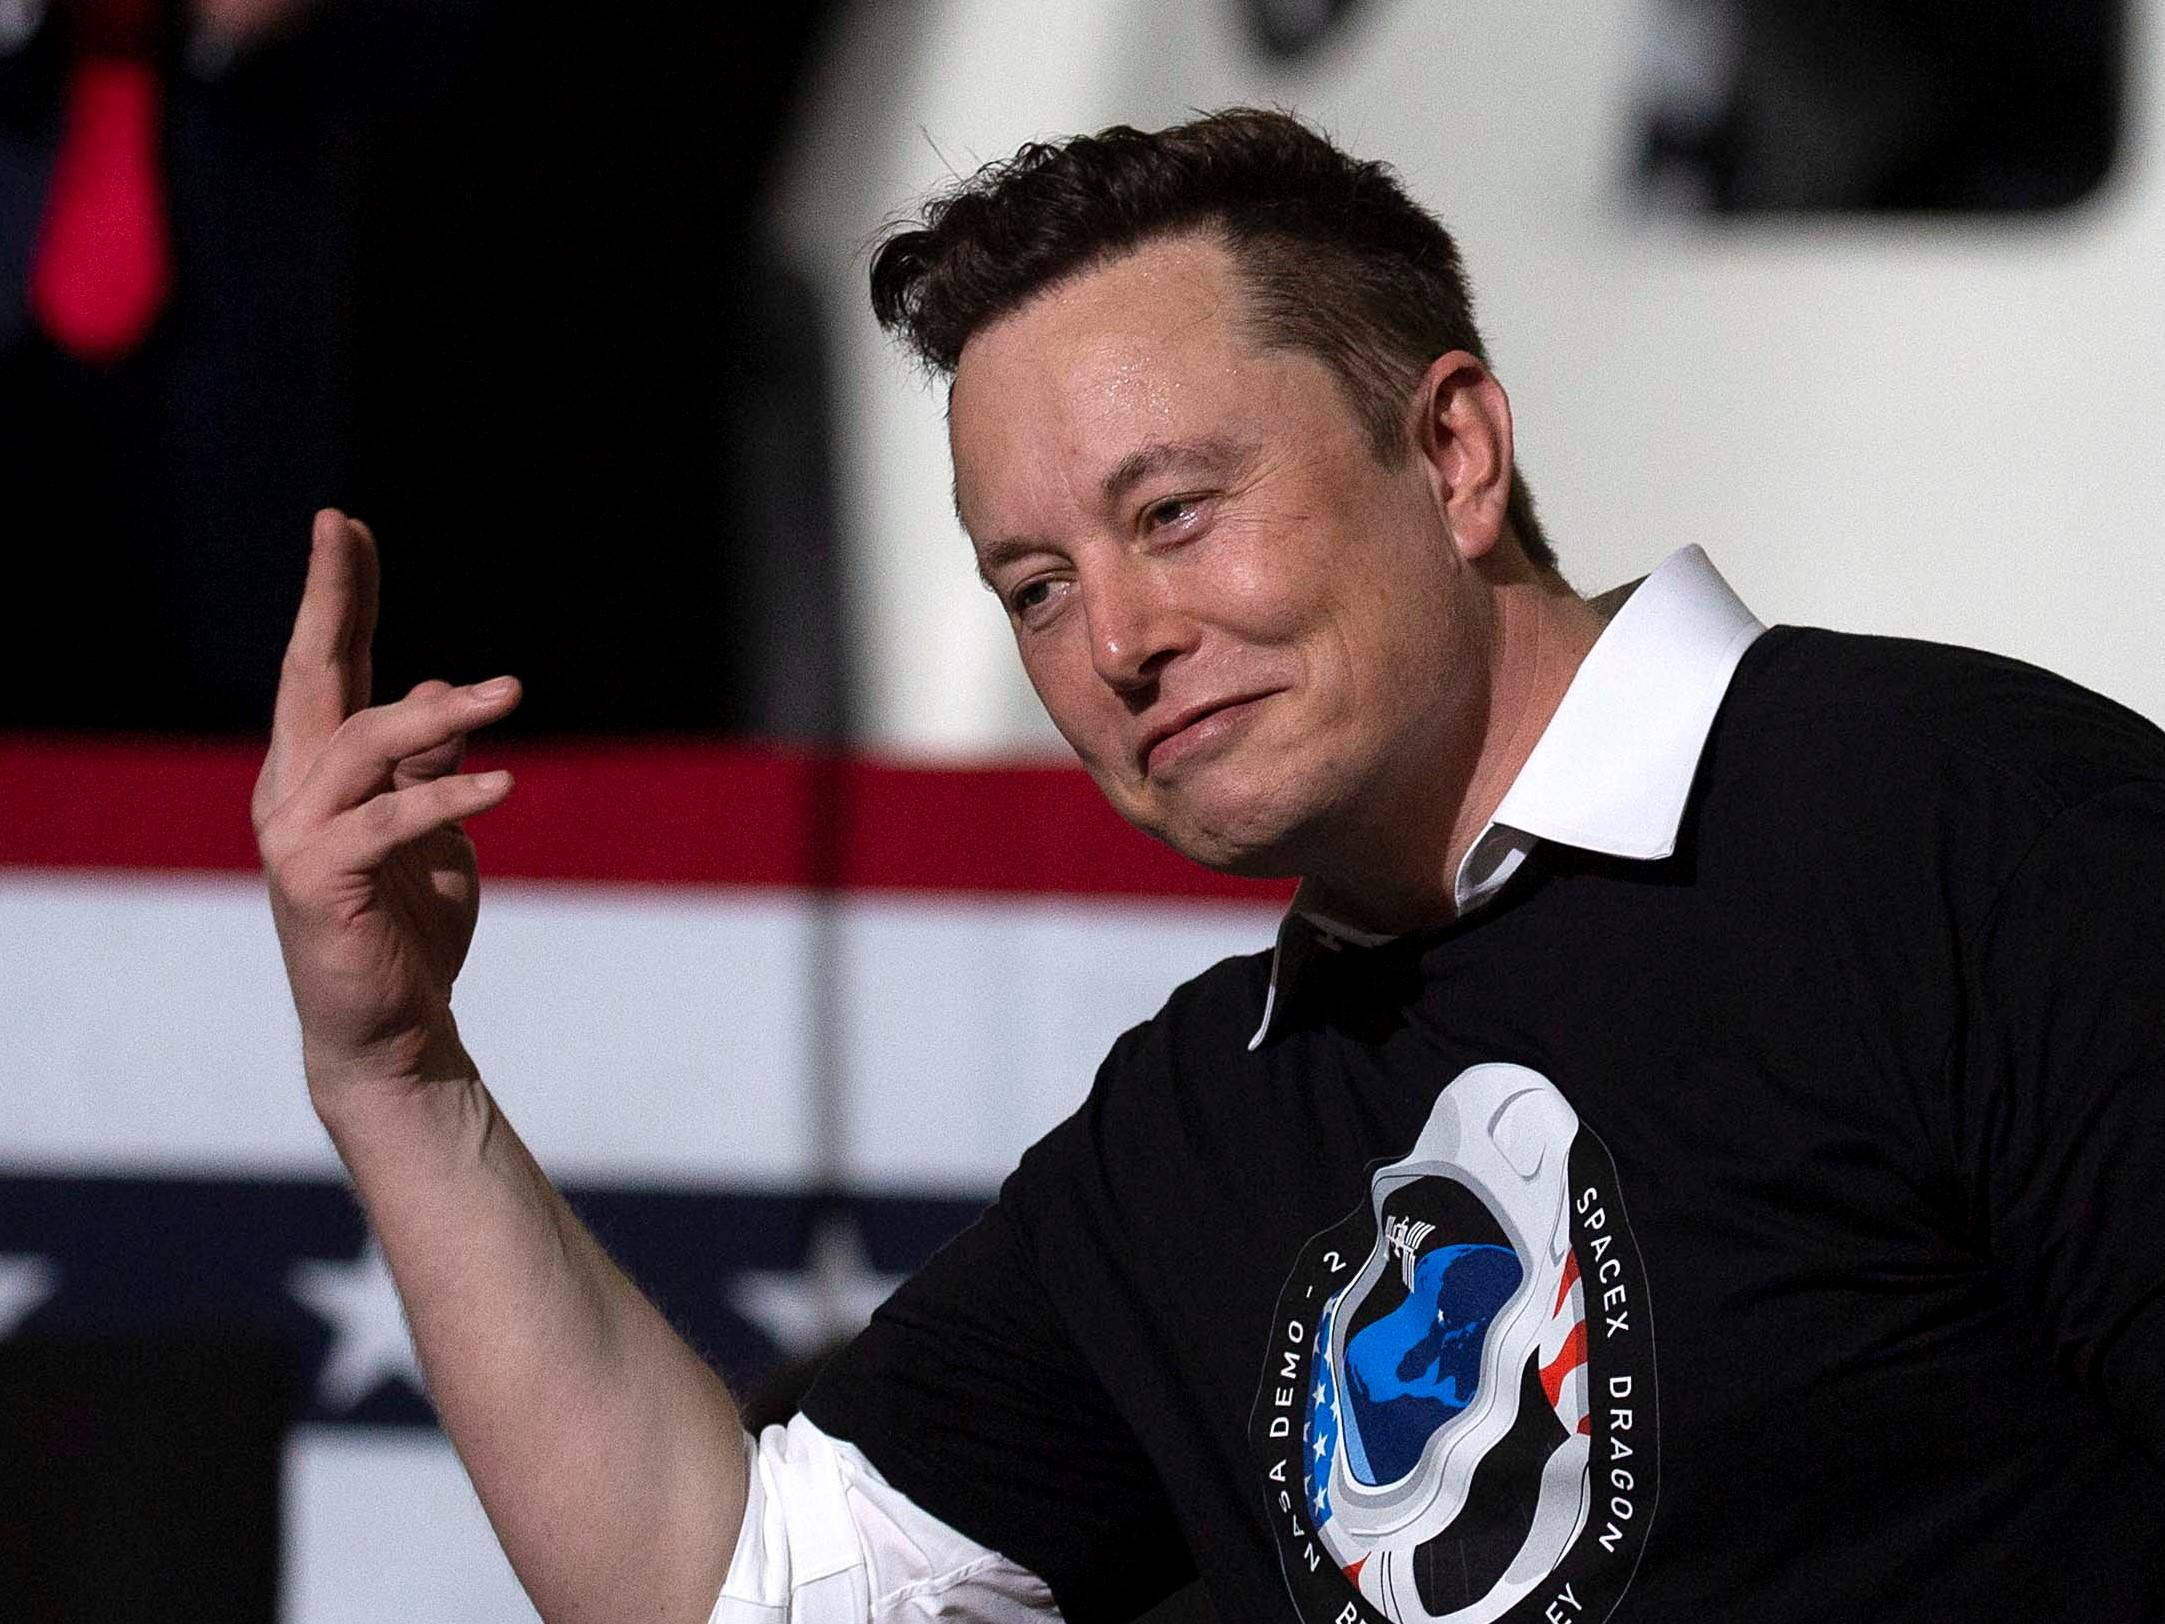 elon musk s net worth quadruples since january to make him third richest person in the world according to bloomberg blillionaire s index the independent the independent elon musk s net worth quadruples since